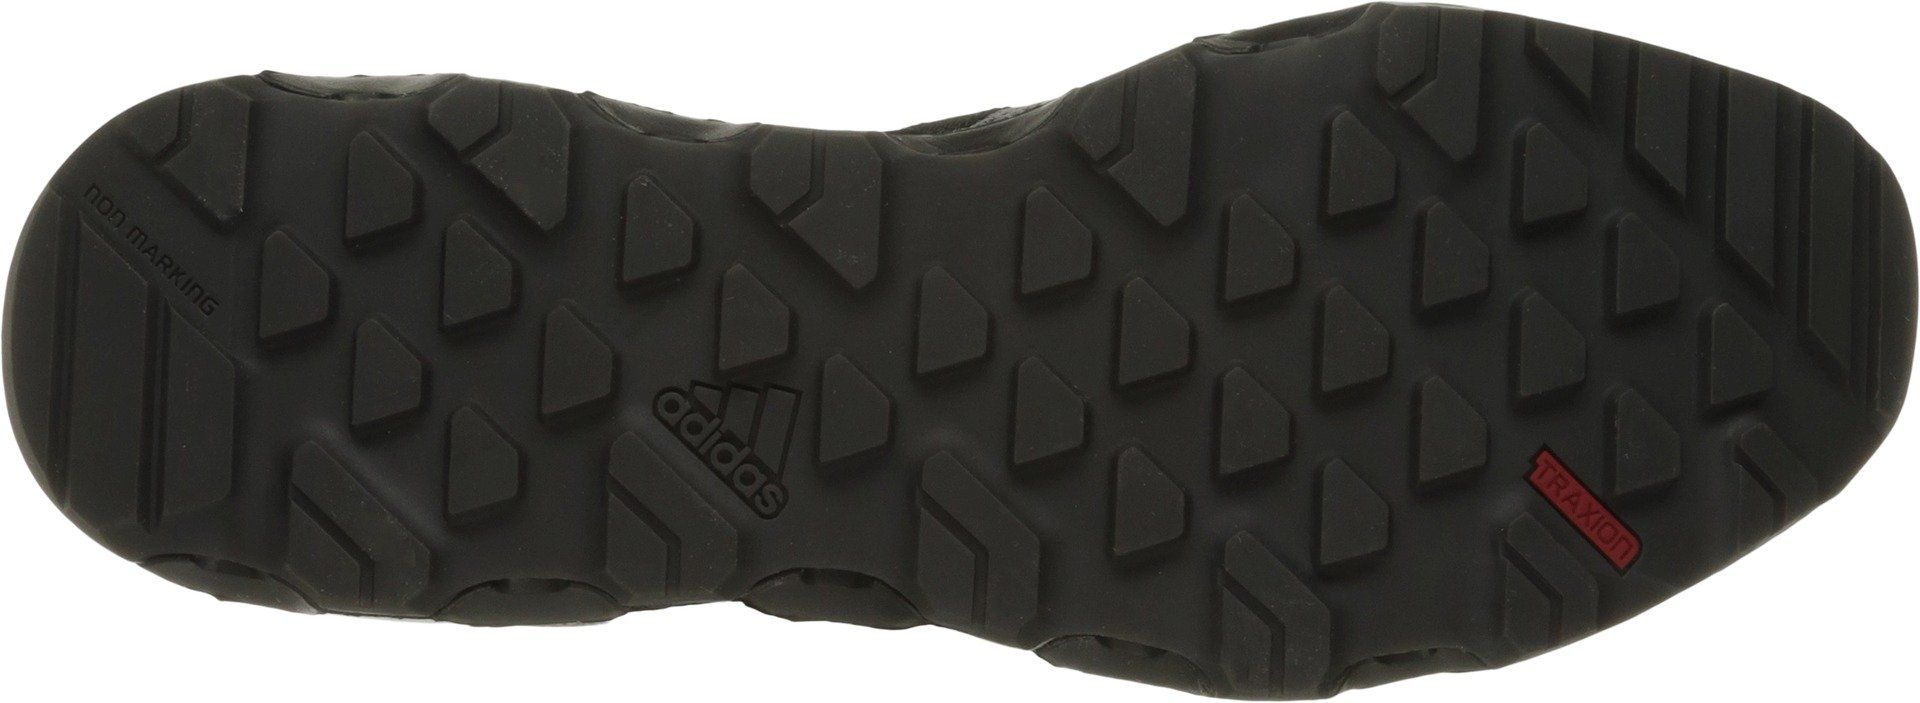 6f9db7b580fc adidas outdoor Men s Terrex Climacool Voyager Water Shoe Grey Black White  9.5 M US - BB1891-020-9.5 M US   Water Shoes   Clothing